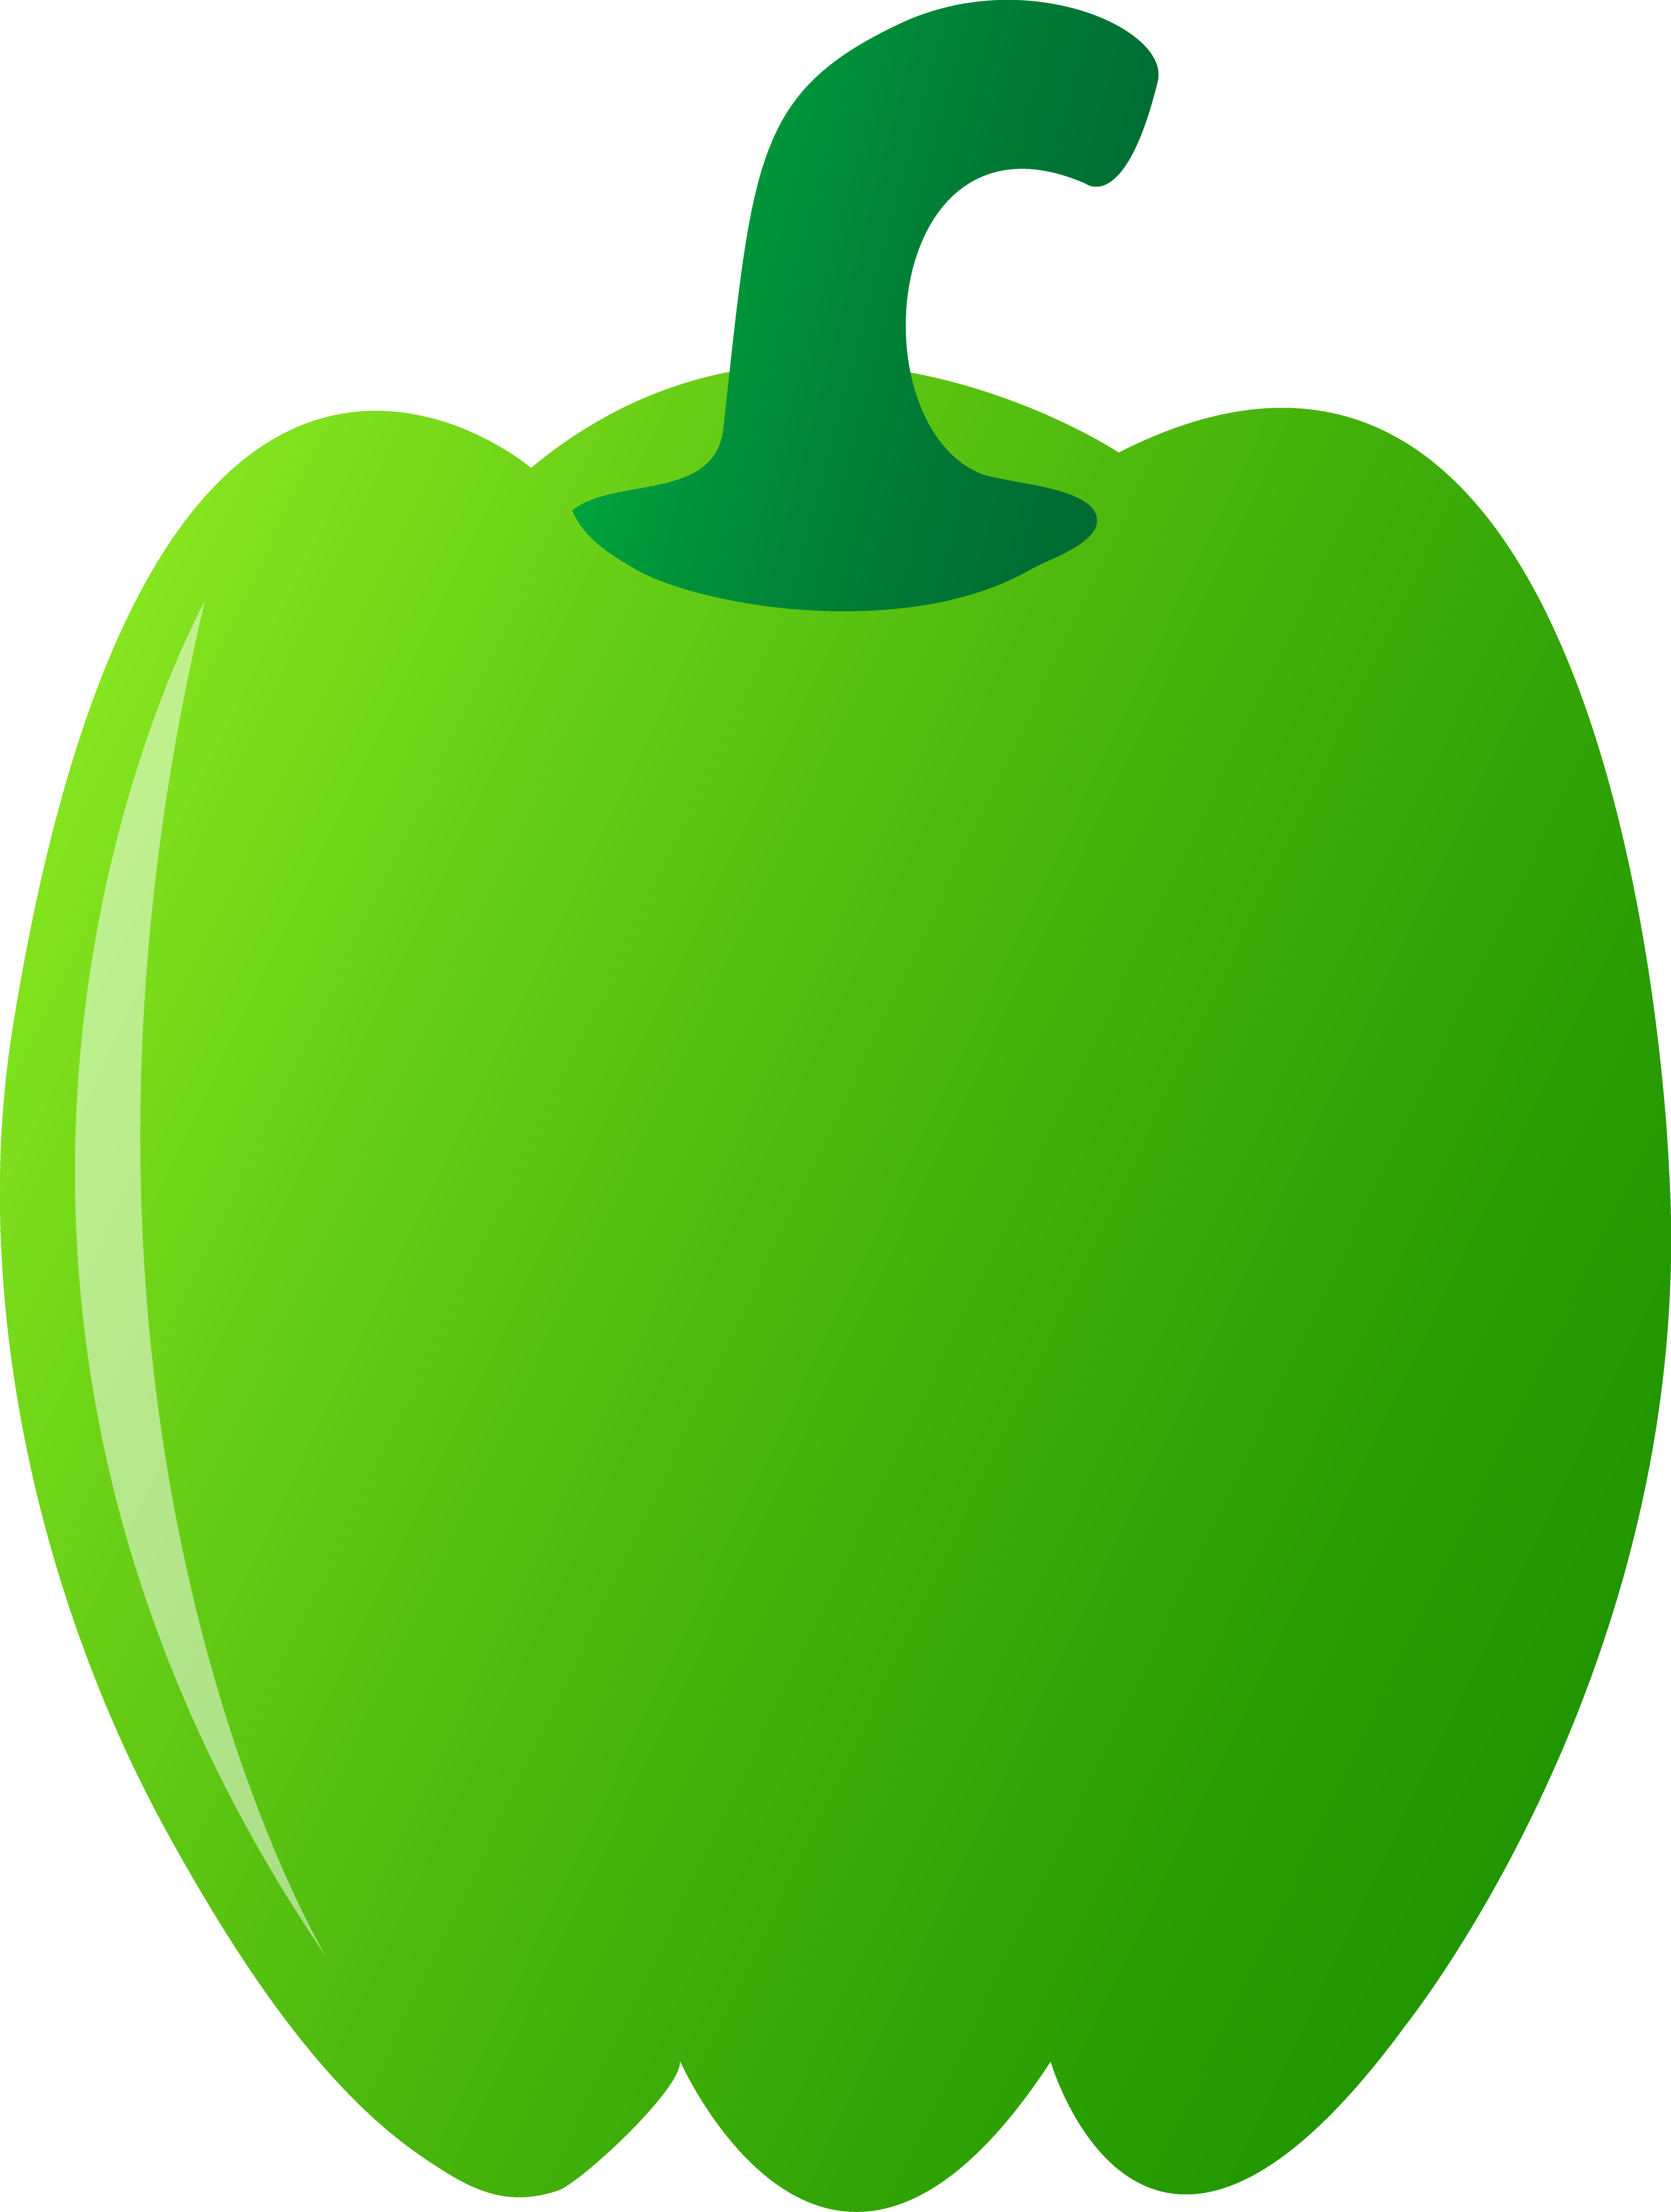 clipart of green - photo #21